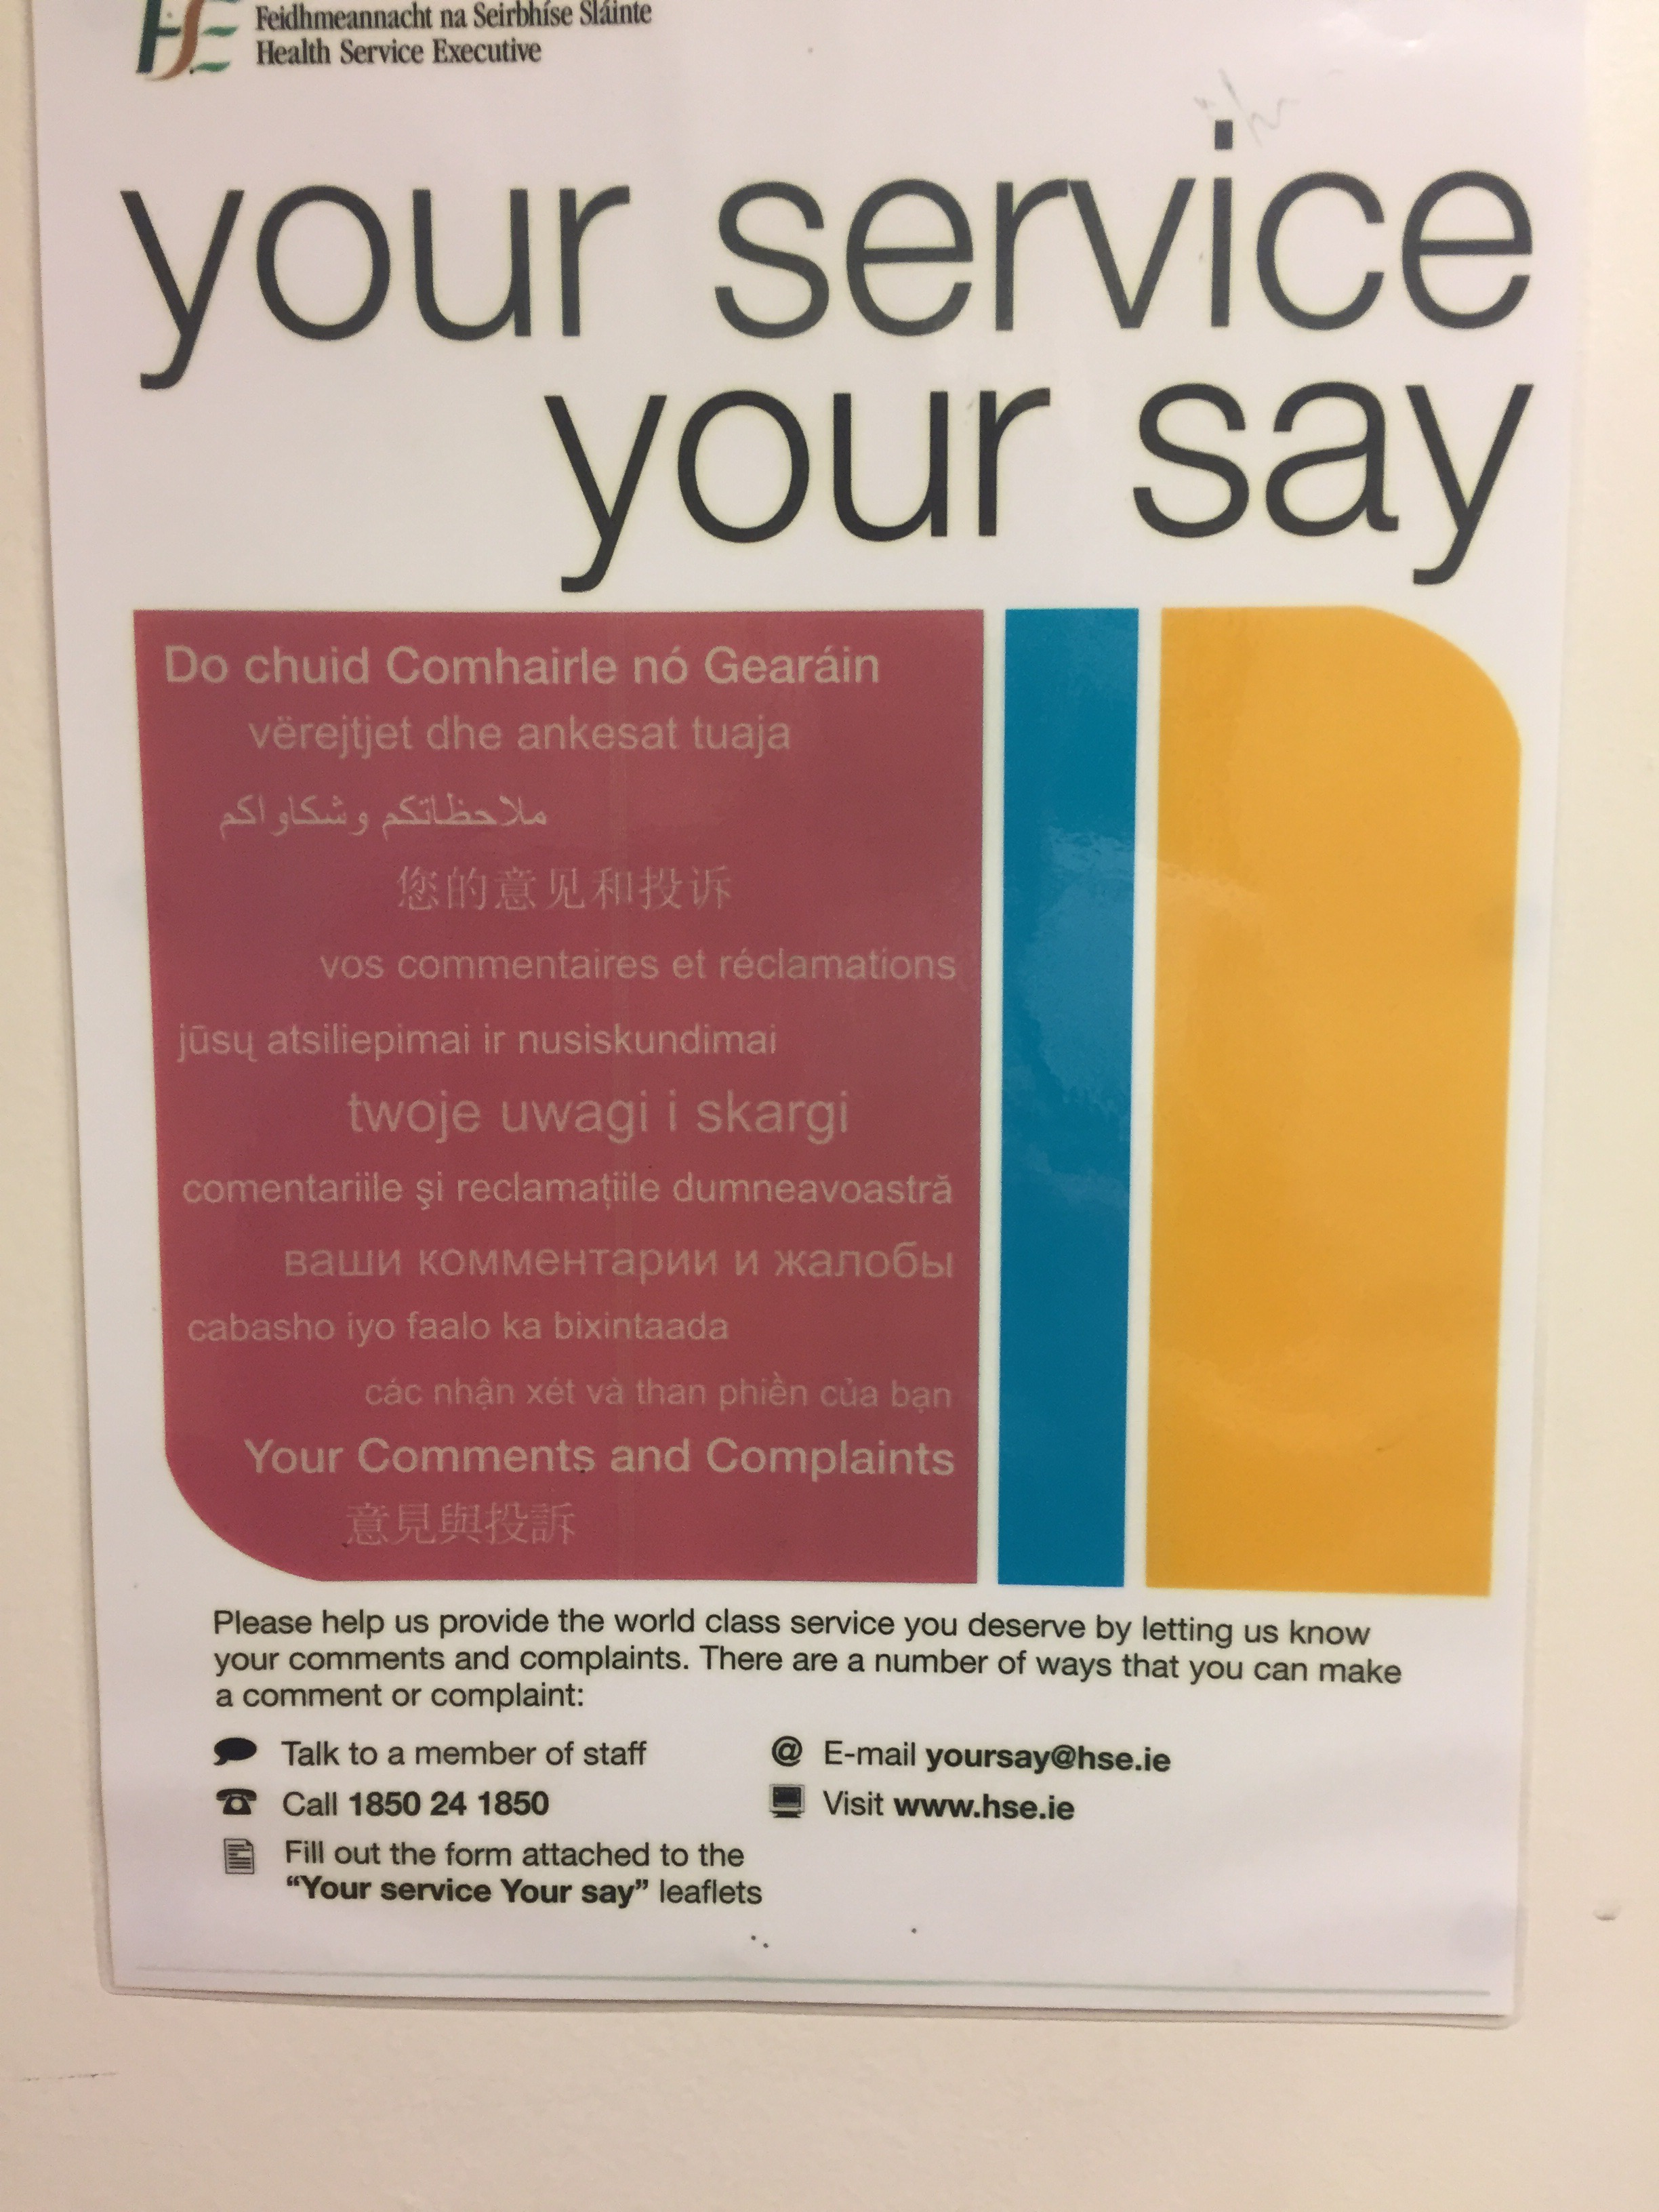 HSE – your service your say